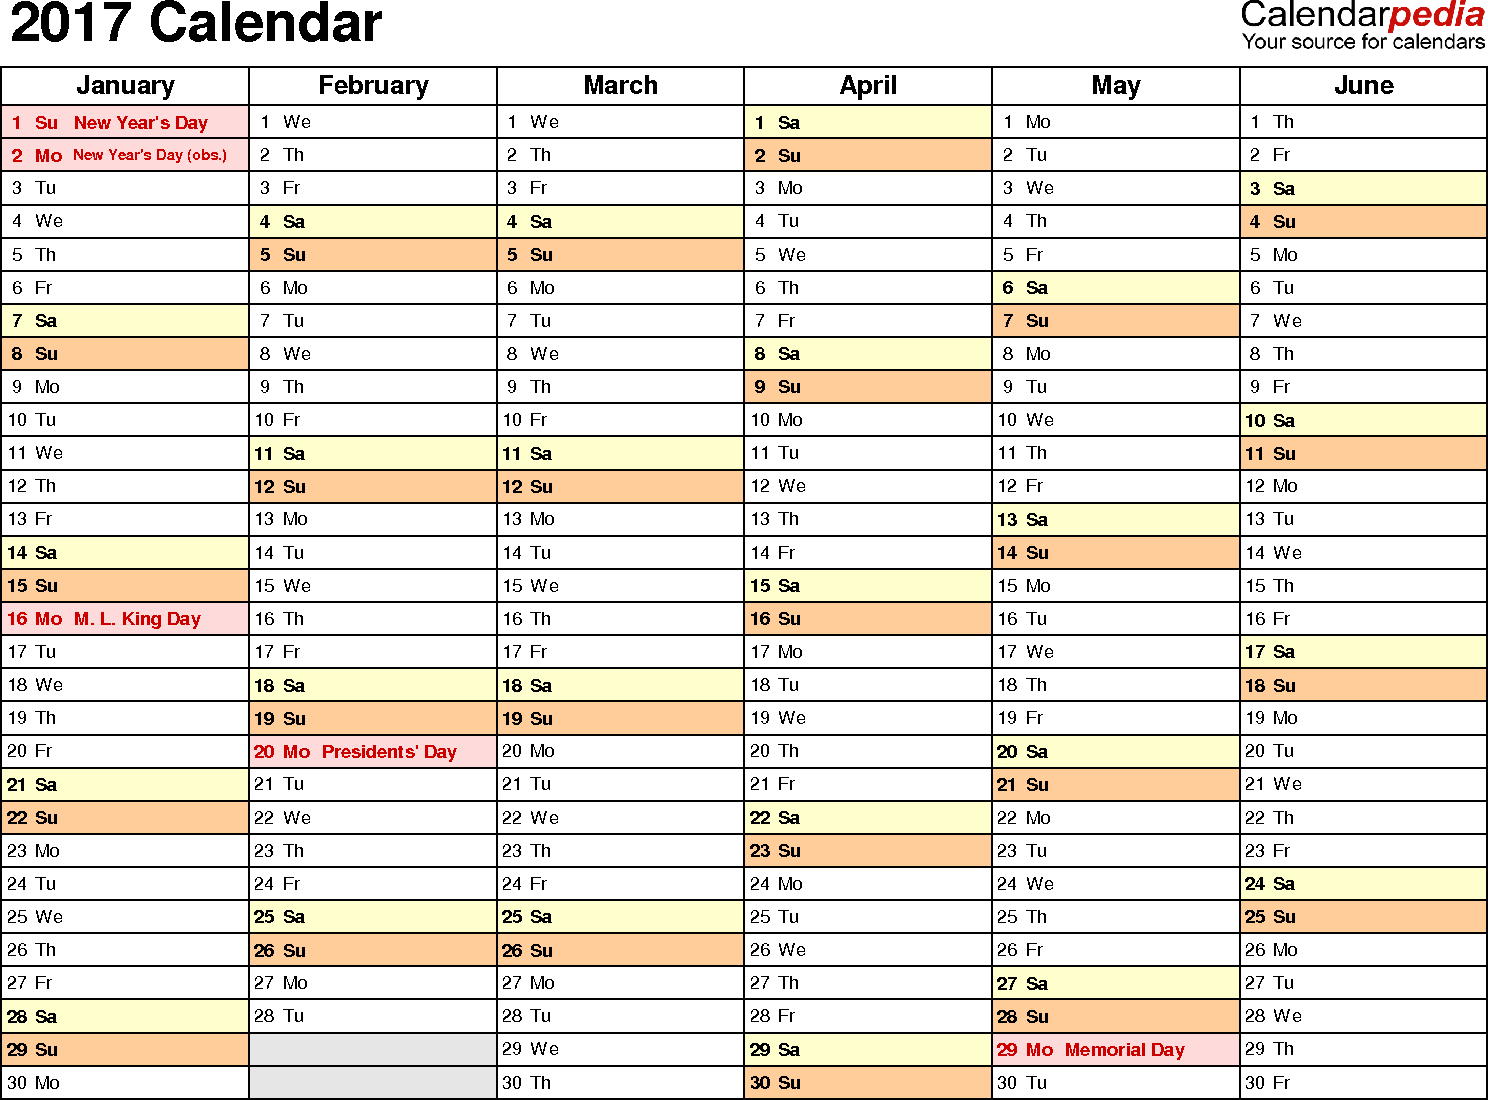 Ediblewildsus  Pleasant  Calendar  Download  Free Printable Excel Templates Xls With Outstanding Template   Calendar For Excel Months Horizontally  Pages Landscape Orientation With Appealing Mail Merge Word And Excel Also How To Calculate Formulas In Excel In Addition Excel  Tutorial And Can I Convert Pdf To Excel As Well As Excel Expense Report Template Free Download Additionally Excel Grid Lines From Calendarpediacom With Ediblewildsus  Outstanding  Calendar  Download  Free Printable Excel Templates Xls With Appealing Template   Calendar For Excel Months Horizontally  Pages Landscape Orientation And Pleasant Mail Merge Word And Excel Also How To Calculate Formulas In Excel In Addition Excel  Tutorial From Calendarpediacom